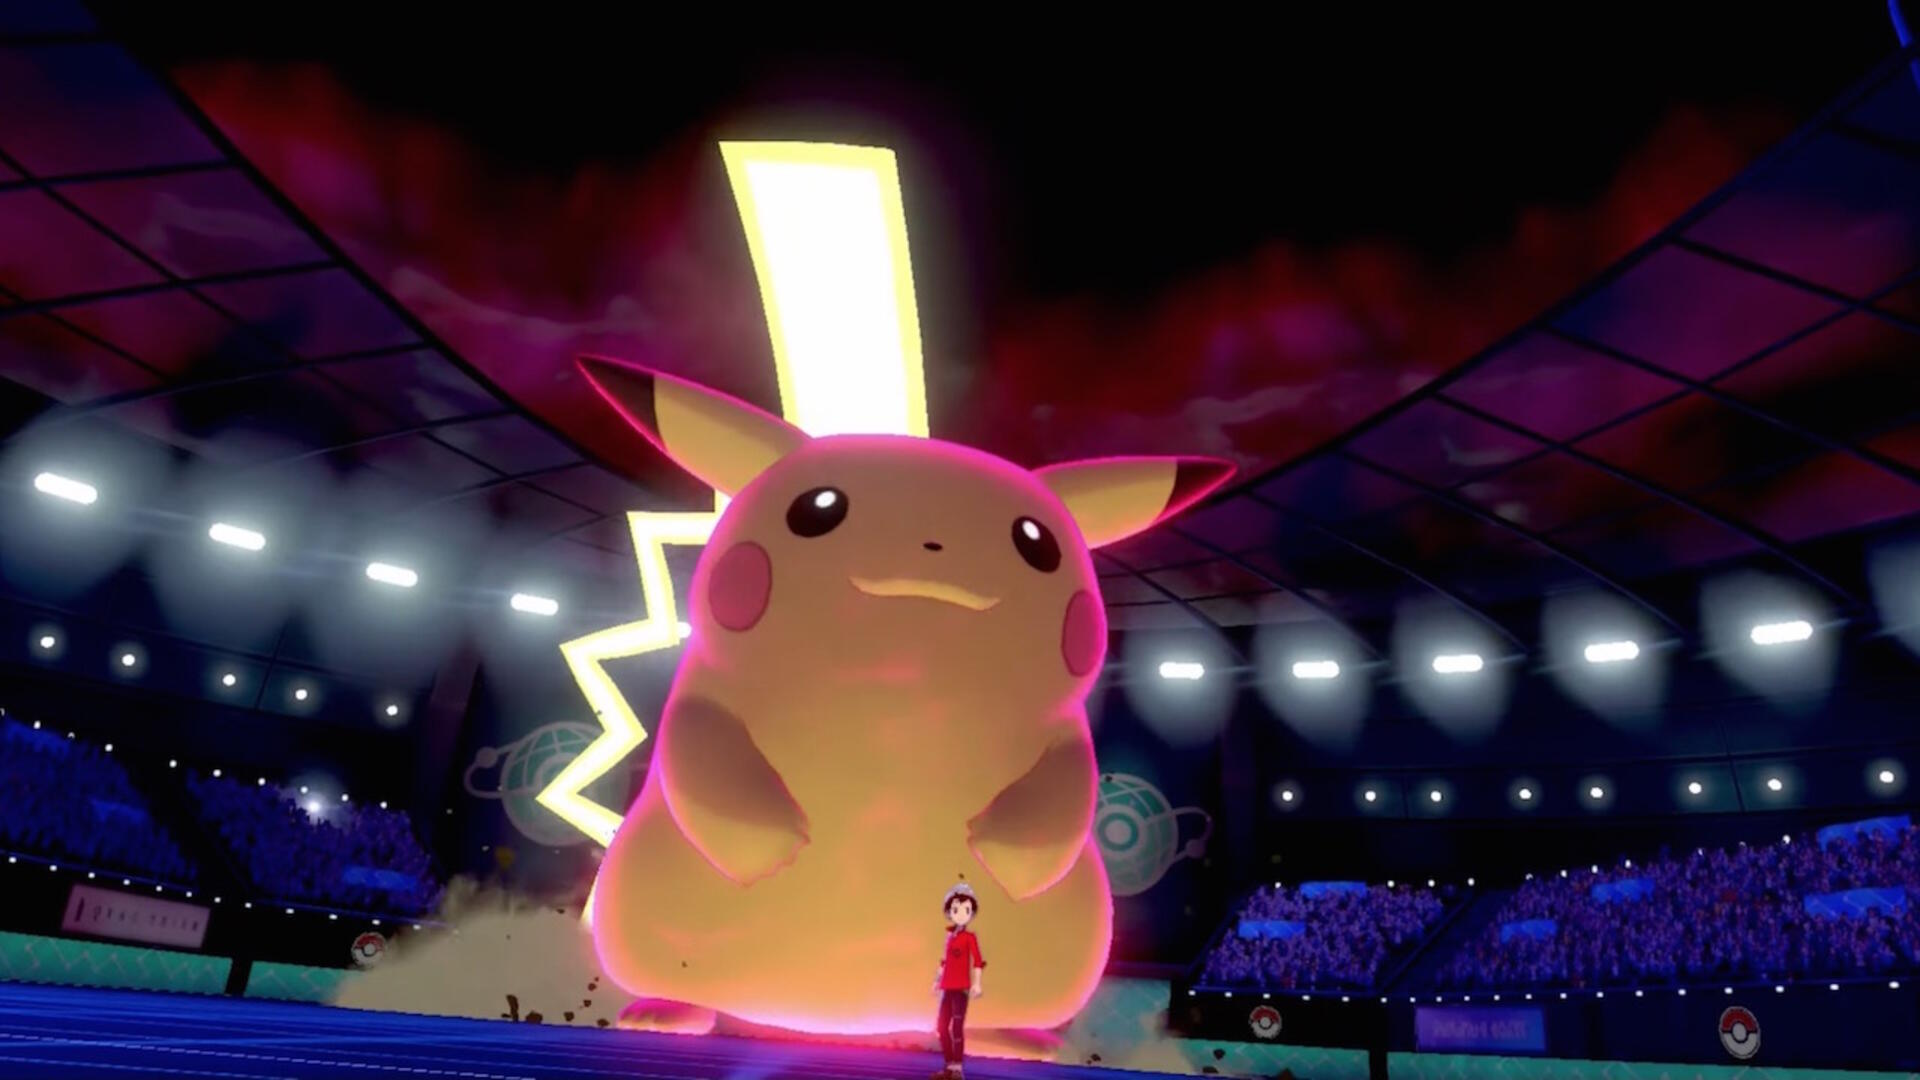 Pokemon Sword and Shield Players Are Reporting a Scary But Solvable SD Card Issue